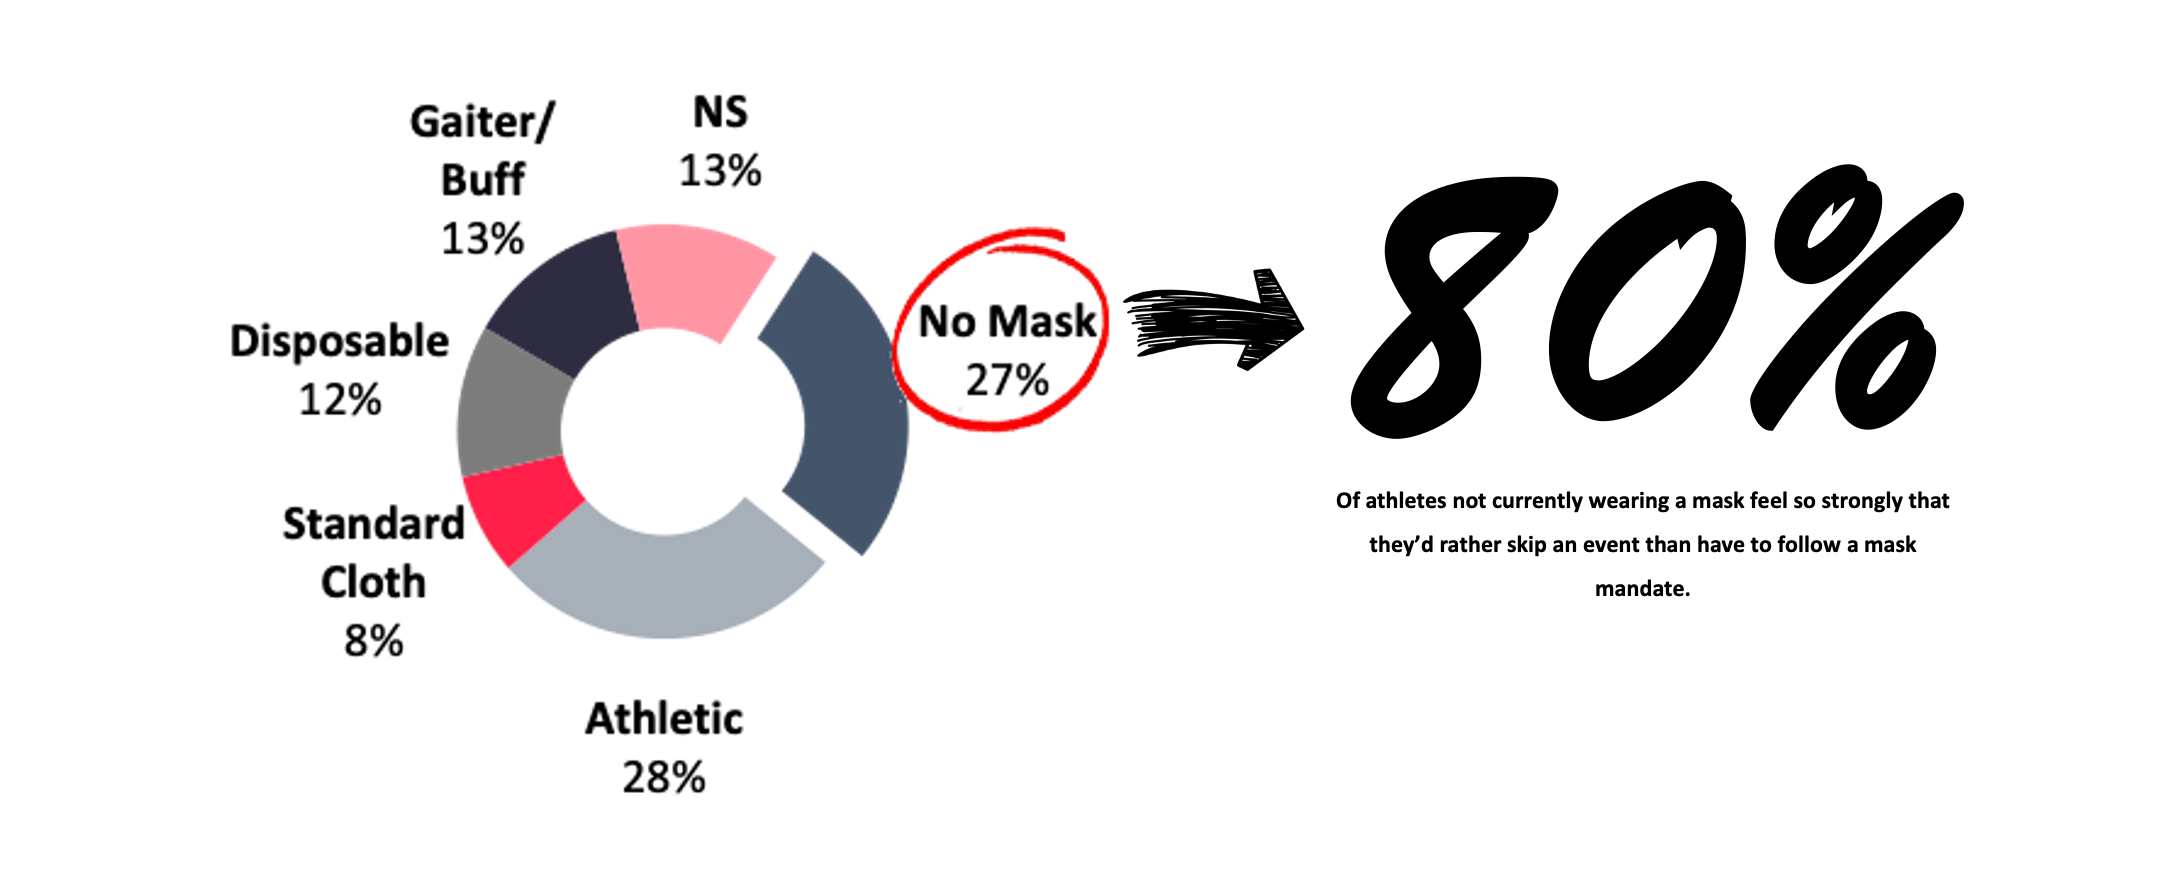 FAVORITE MASKS FOR FITNESS BREAKDOWN OUT OF TOTAL